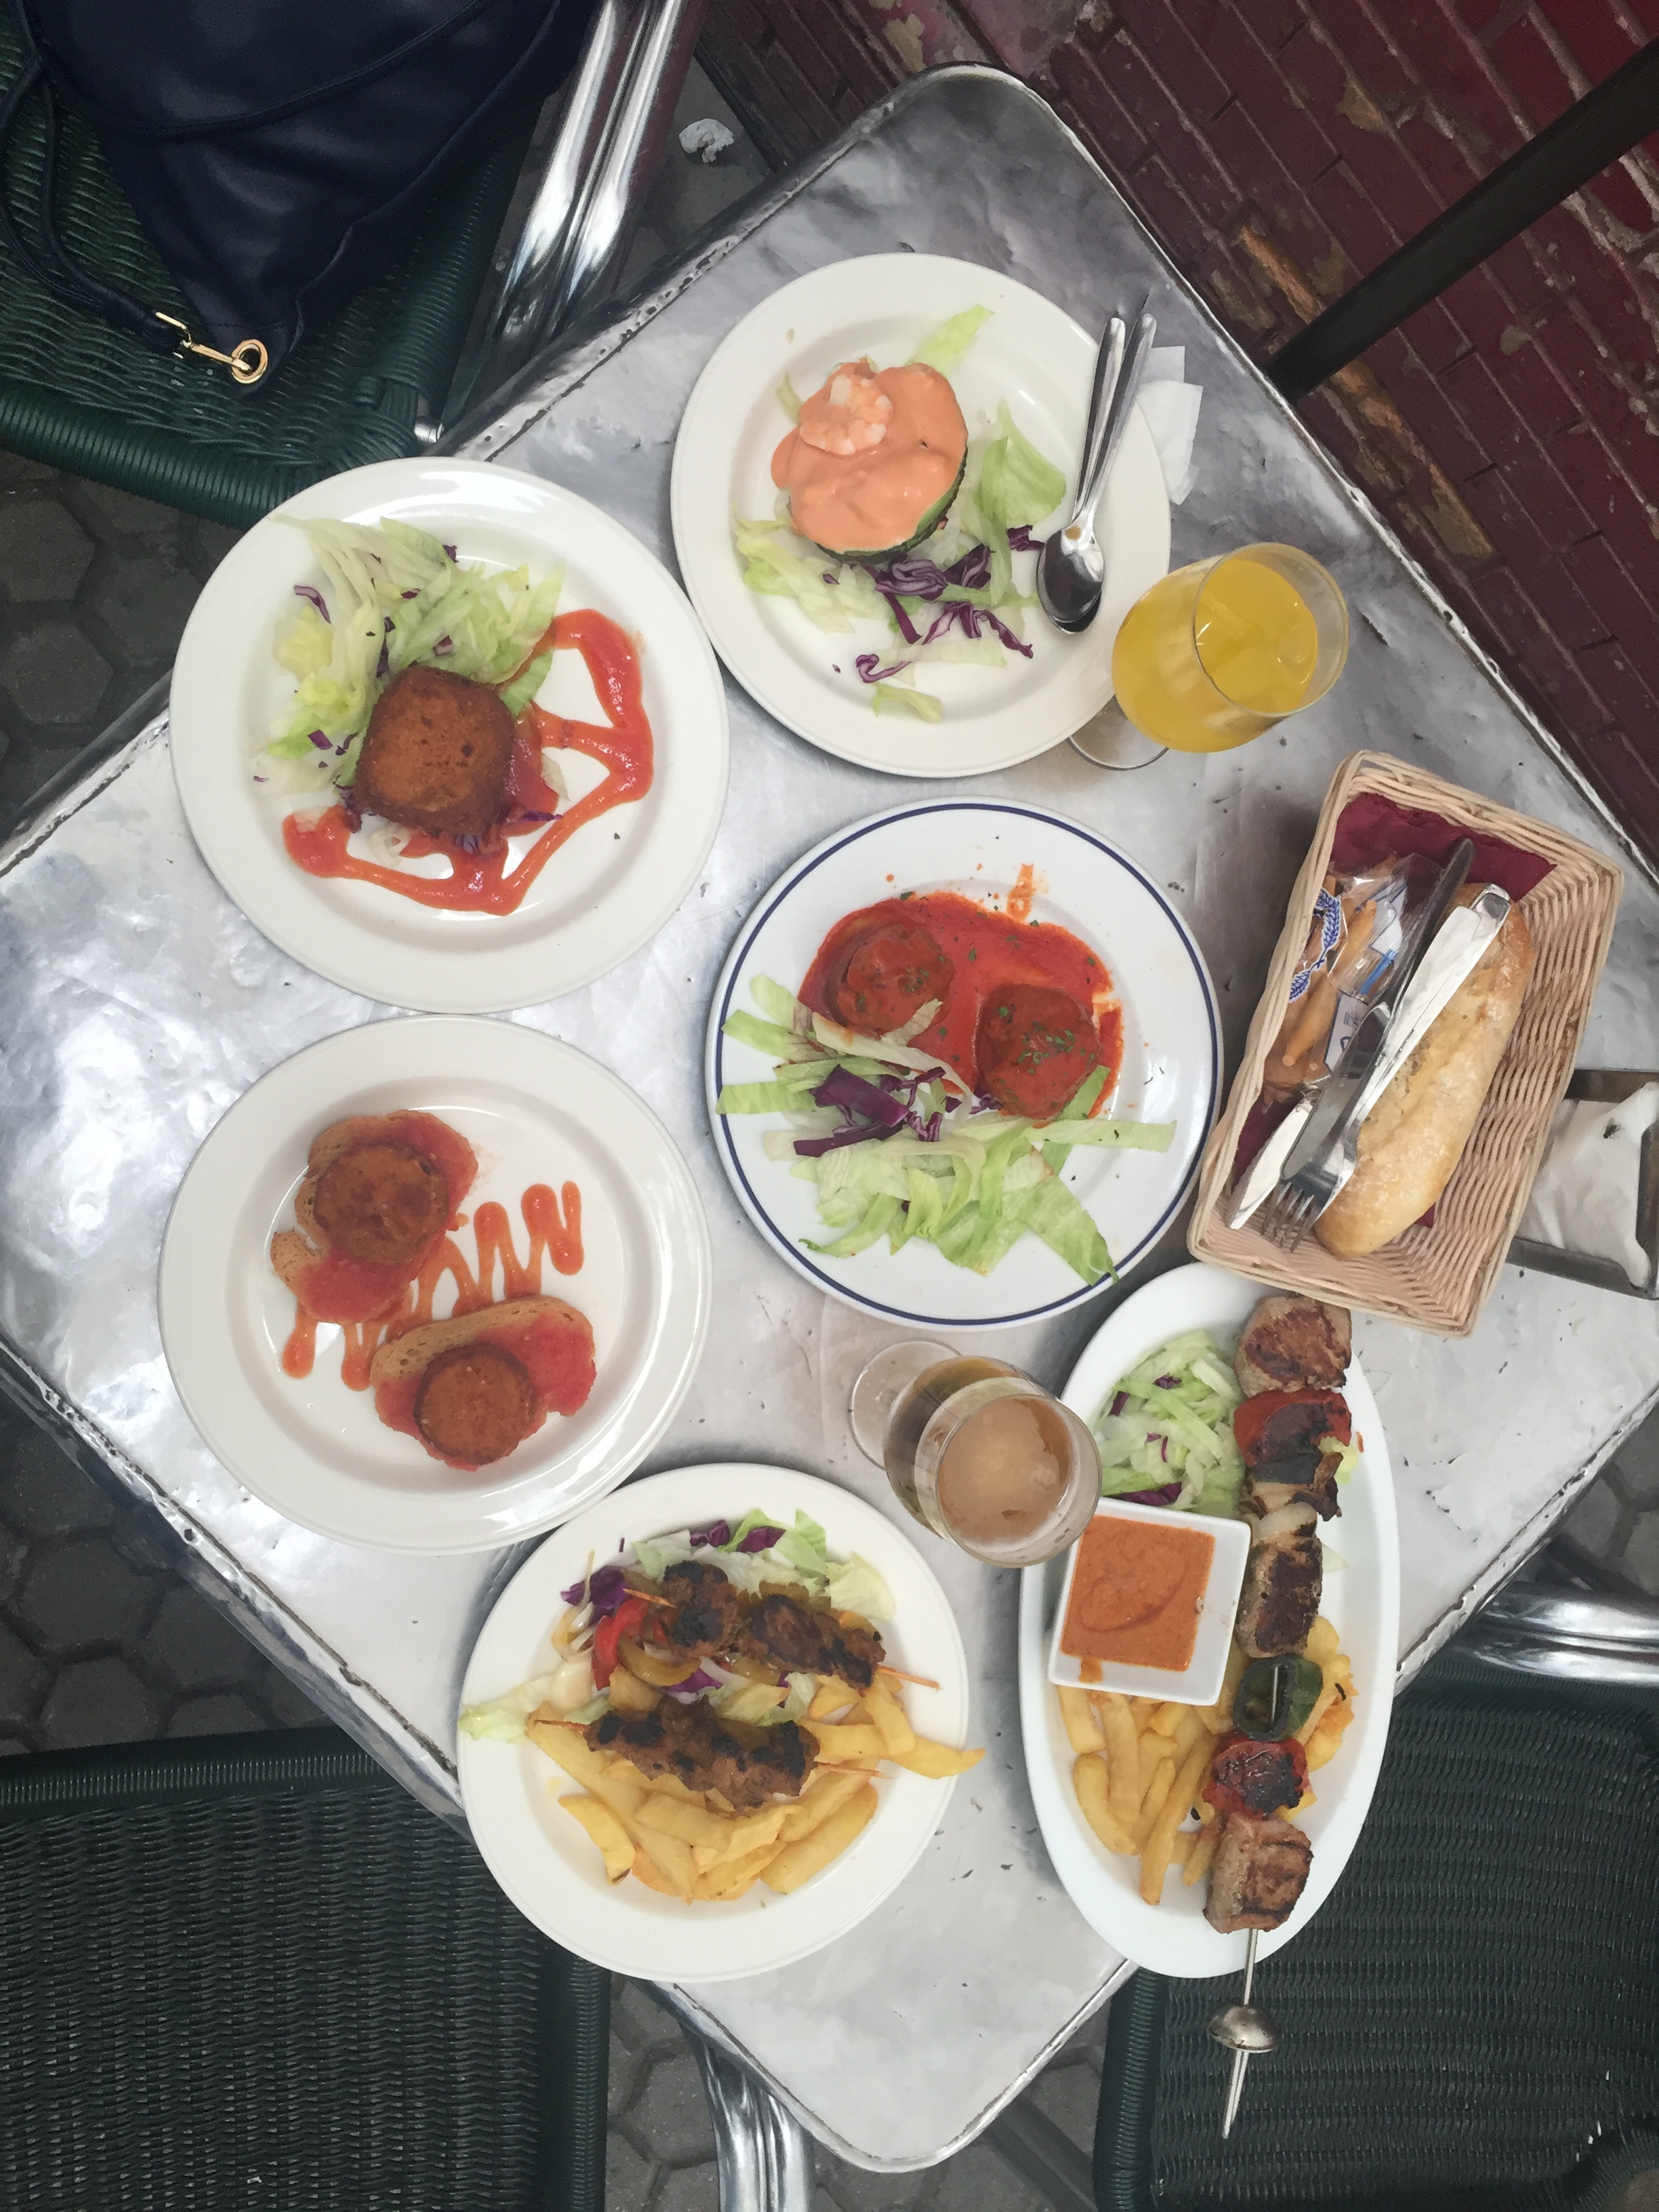 Stuffed mushroom with meat and tomato sauce, Stuffed avocado, Fried goat cheese and tomato slices on toast, Camembert cheese filled with prawns, grilled chicken and beef with roasted peppers and chunky chips.